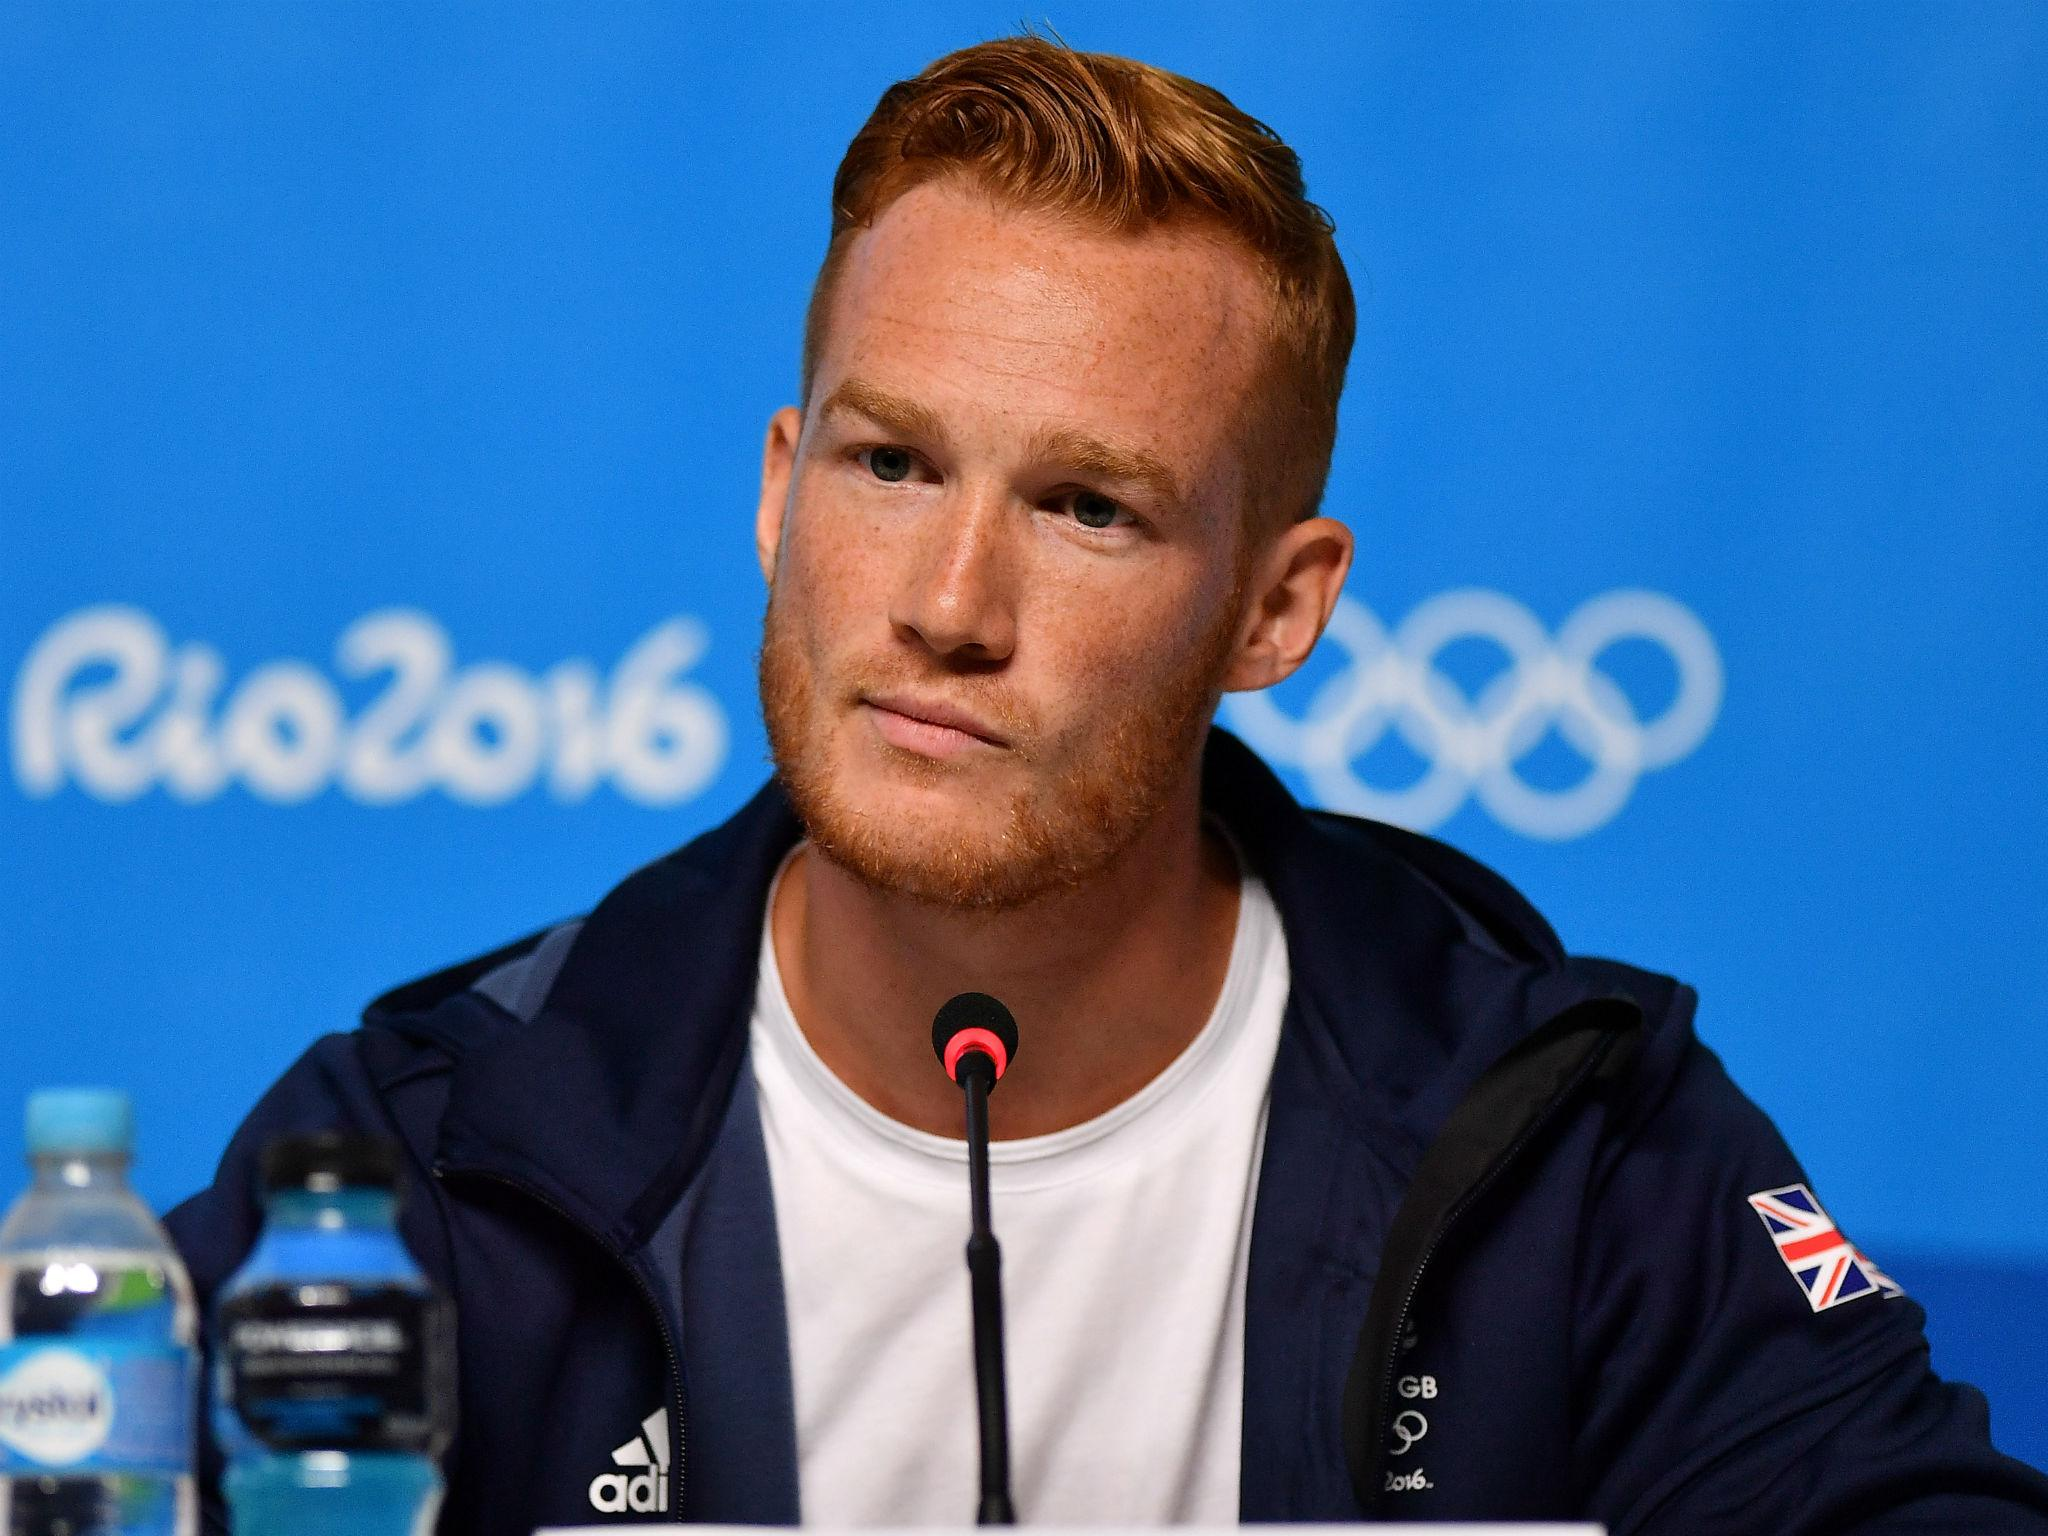 2048x1536 - Greg Rutherford Wallpapers 7